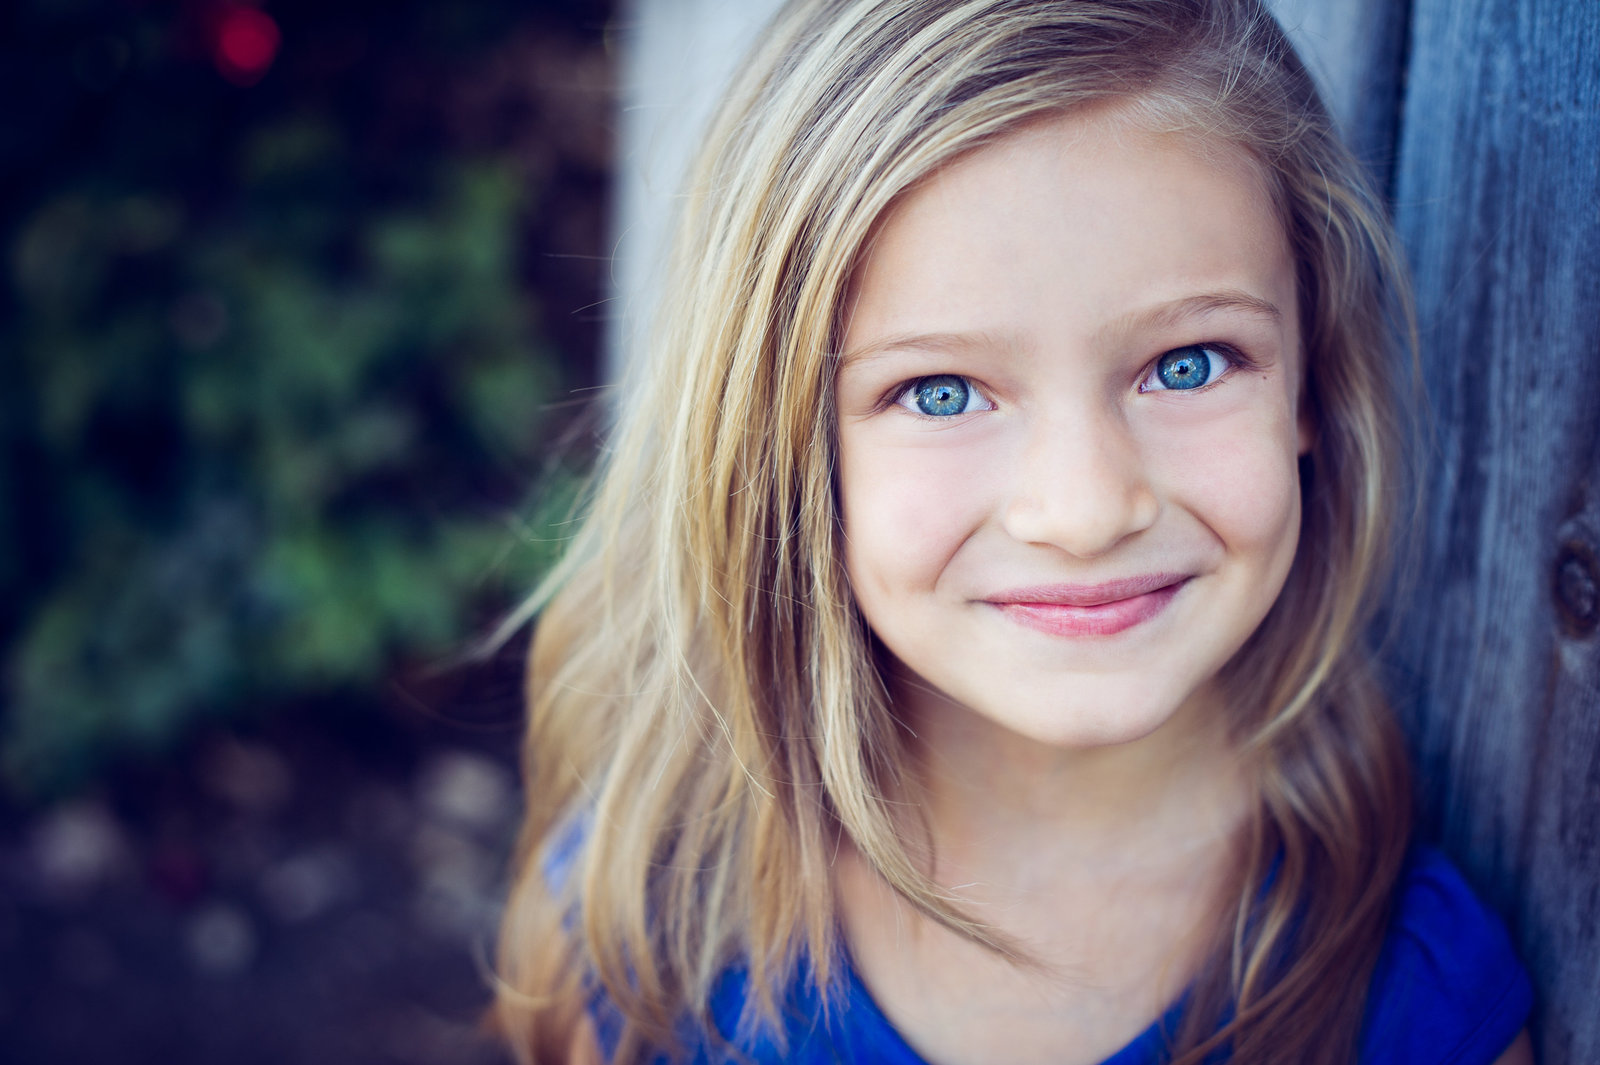 headshot of child with stunning blue eyes